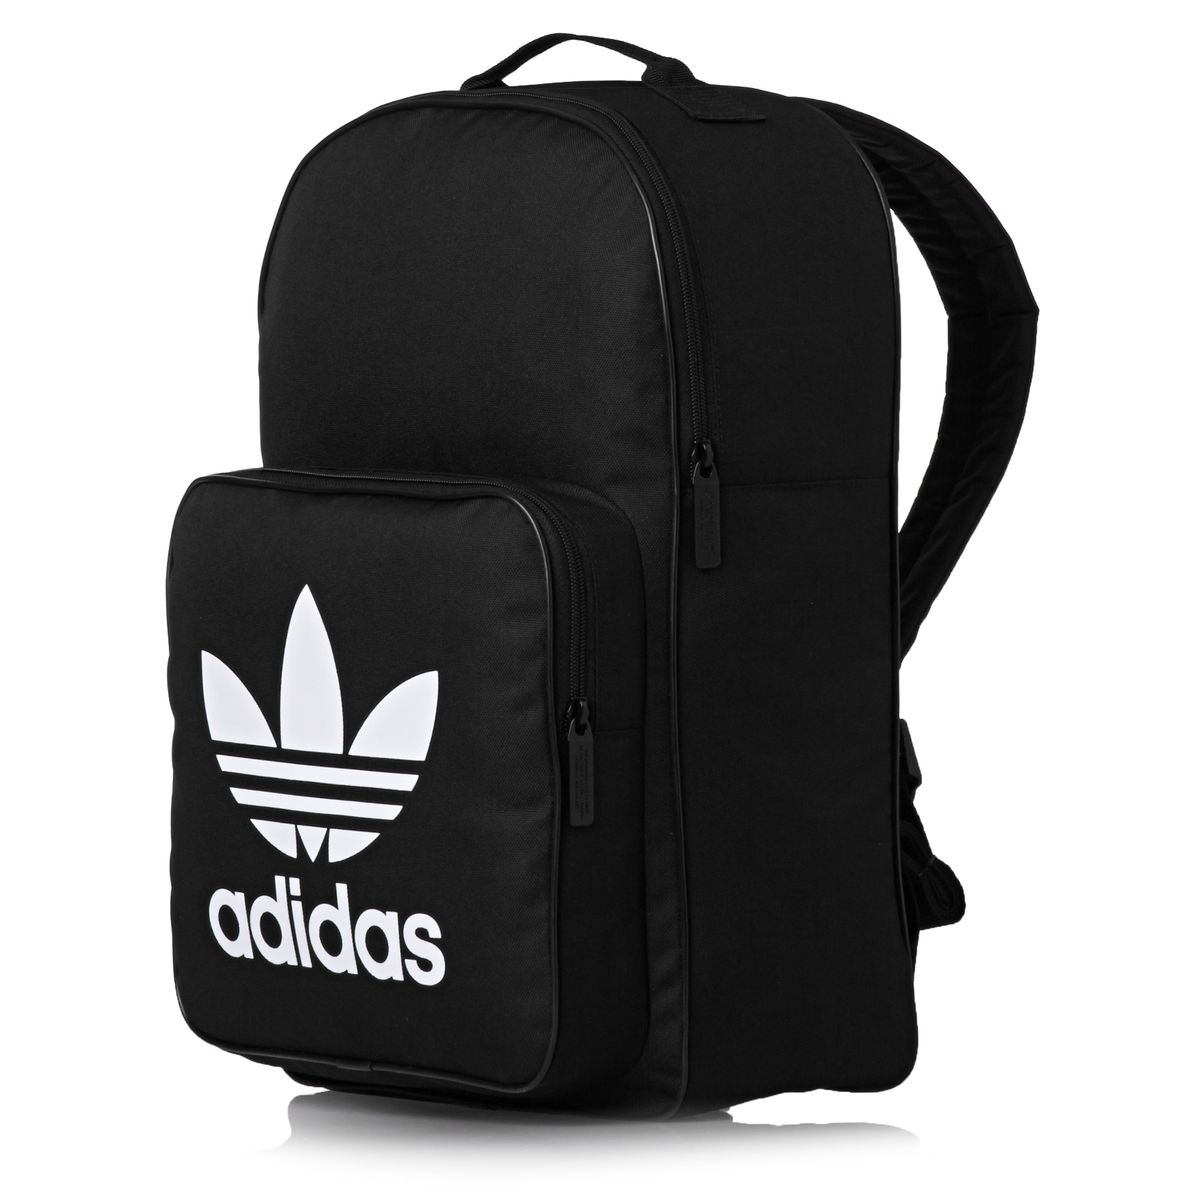 9849887ee47 Adidas Originals Classic Trefoil Backpack available from Surfdome